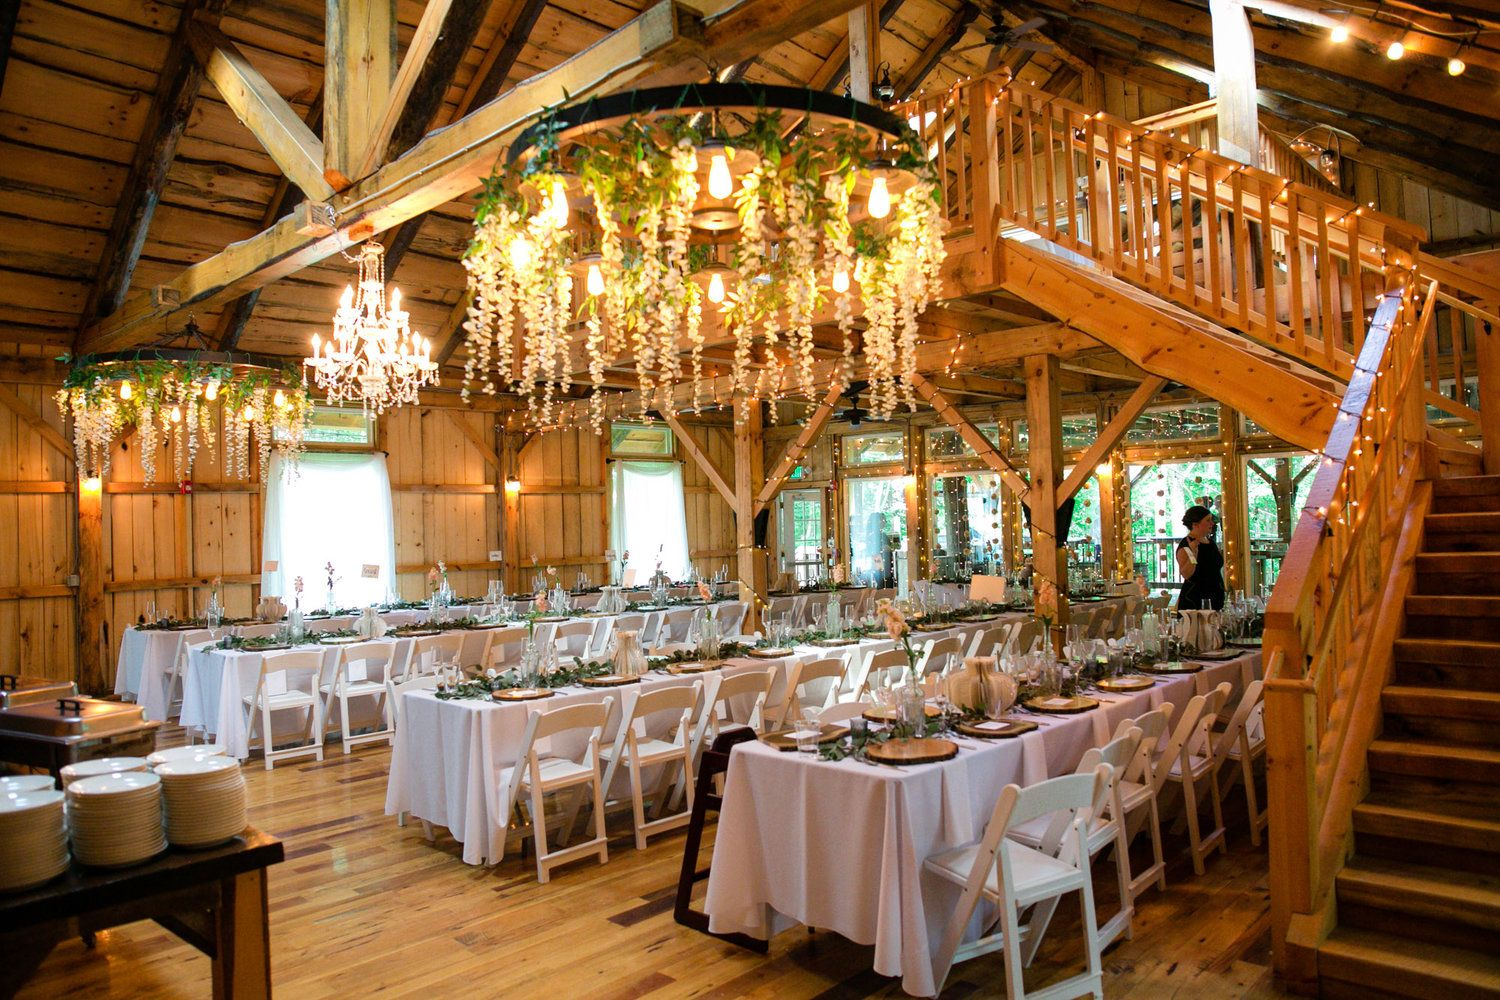 The Grand Barn At The Mohicans Wedding Leslie Dane Barn Wedding Inspiration Rustic Barn Wedding Barn Wedding Reception